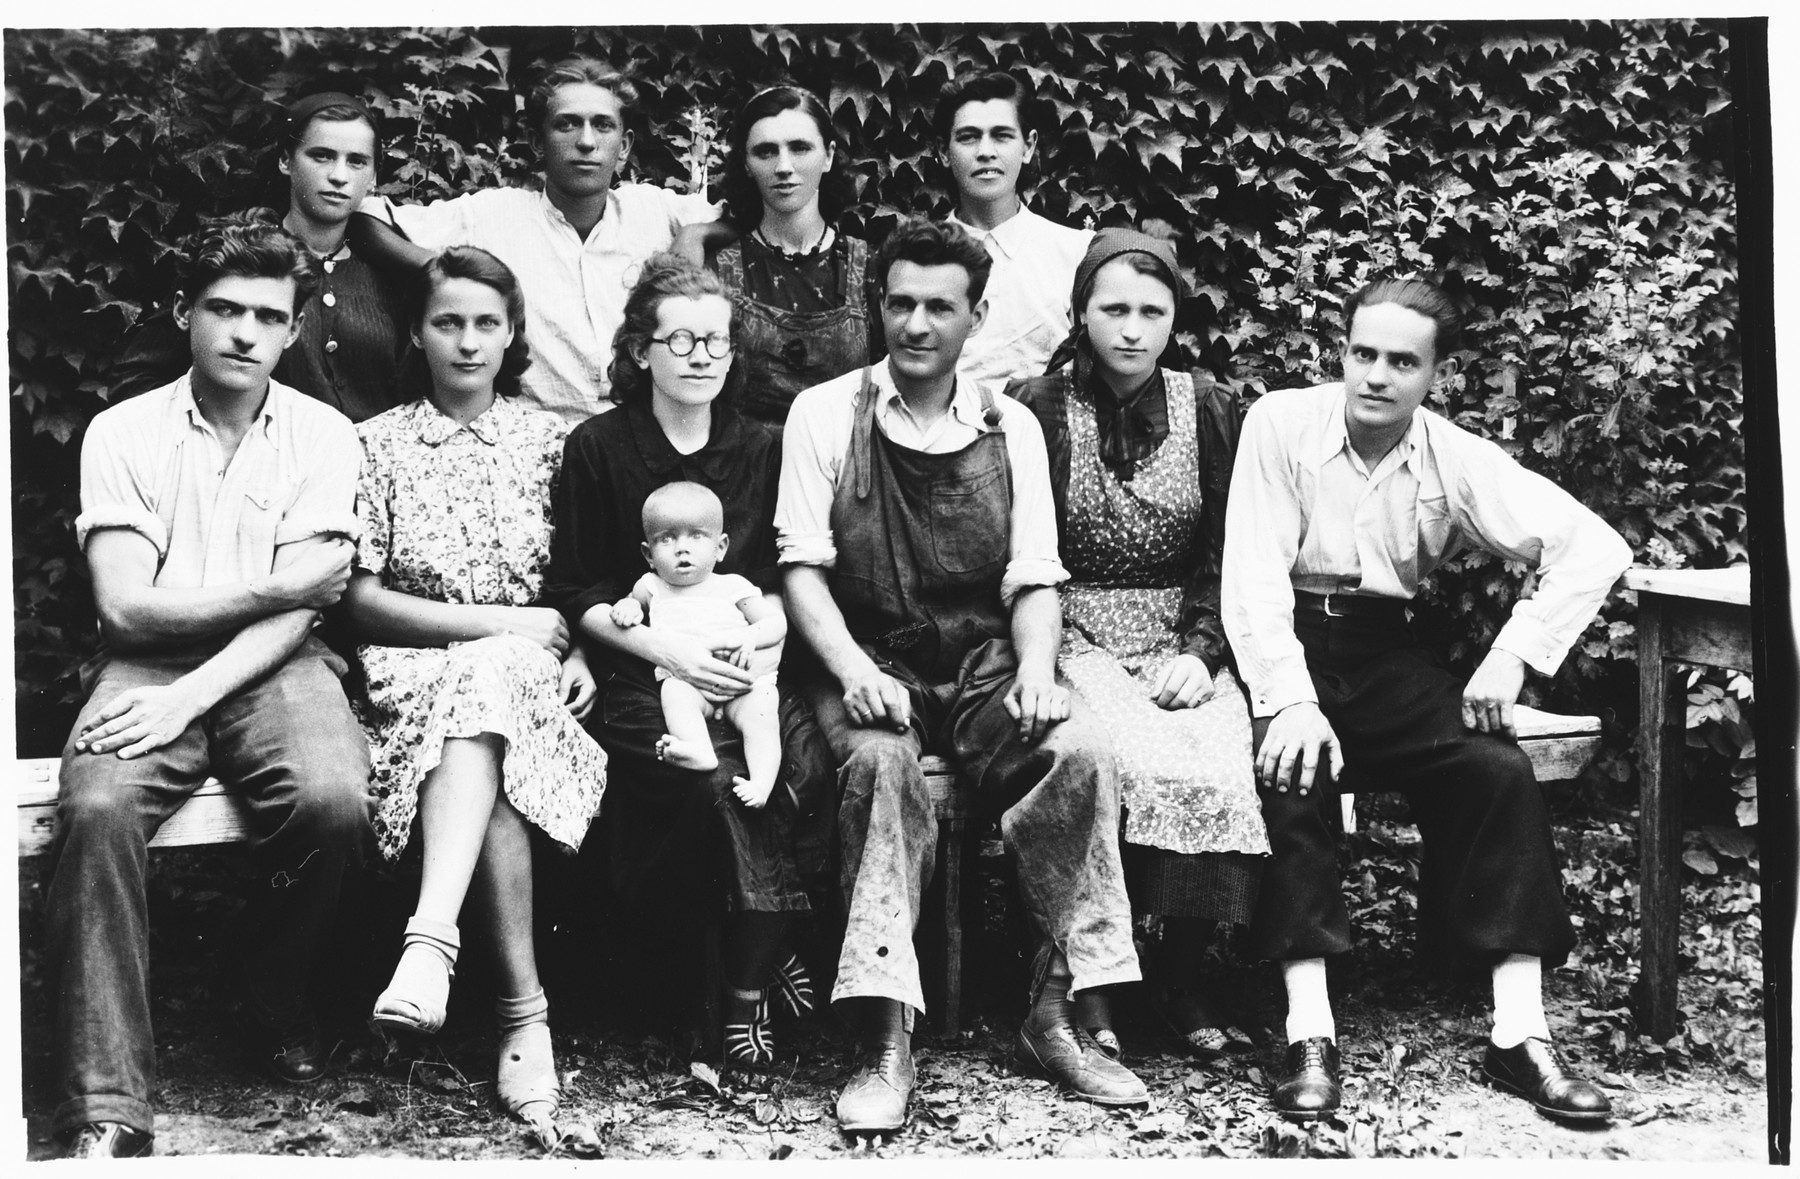 Salamon Basch (third from the right) poses with the employees of his brush making workshop in Zagreb, Croatia.  Also pictured is Silva Basch holding her daughter Teodora.